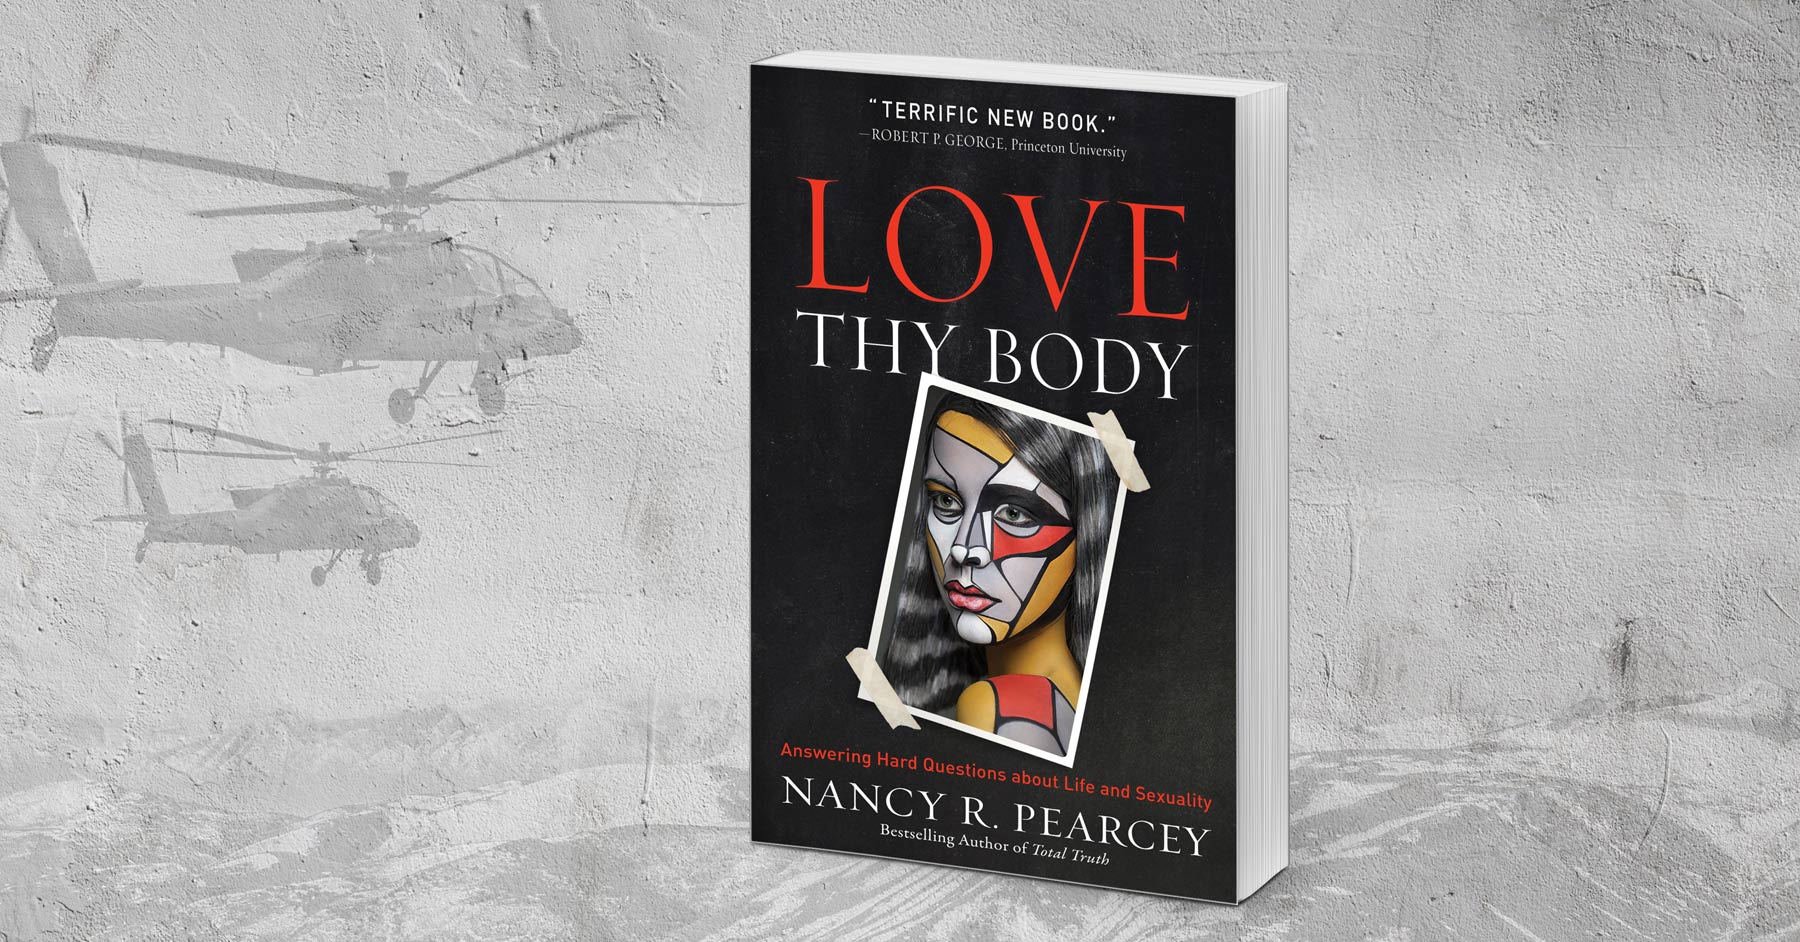 Love Thy Body. A book review